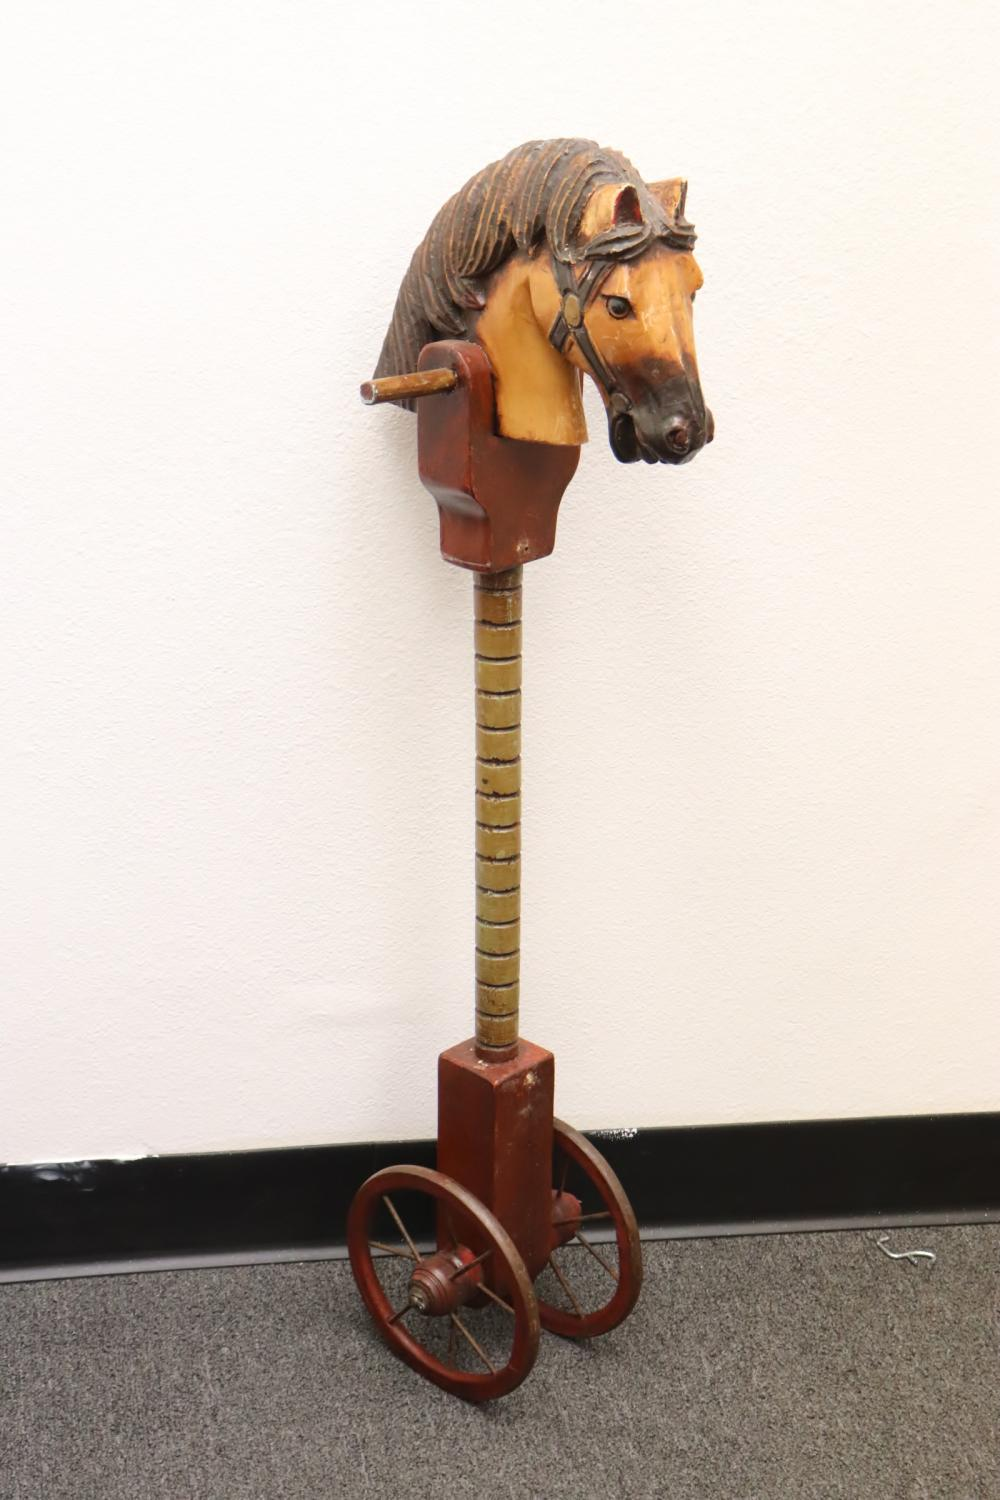 Wood carved hobby horse on wheel